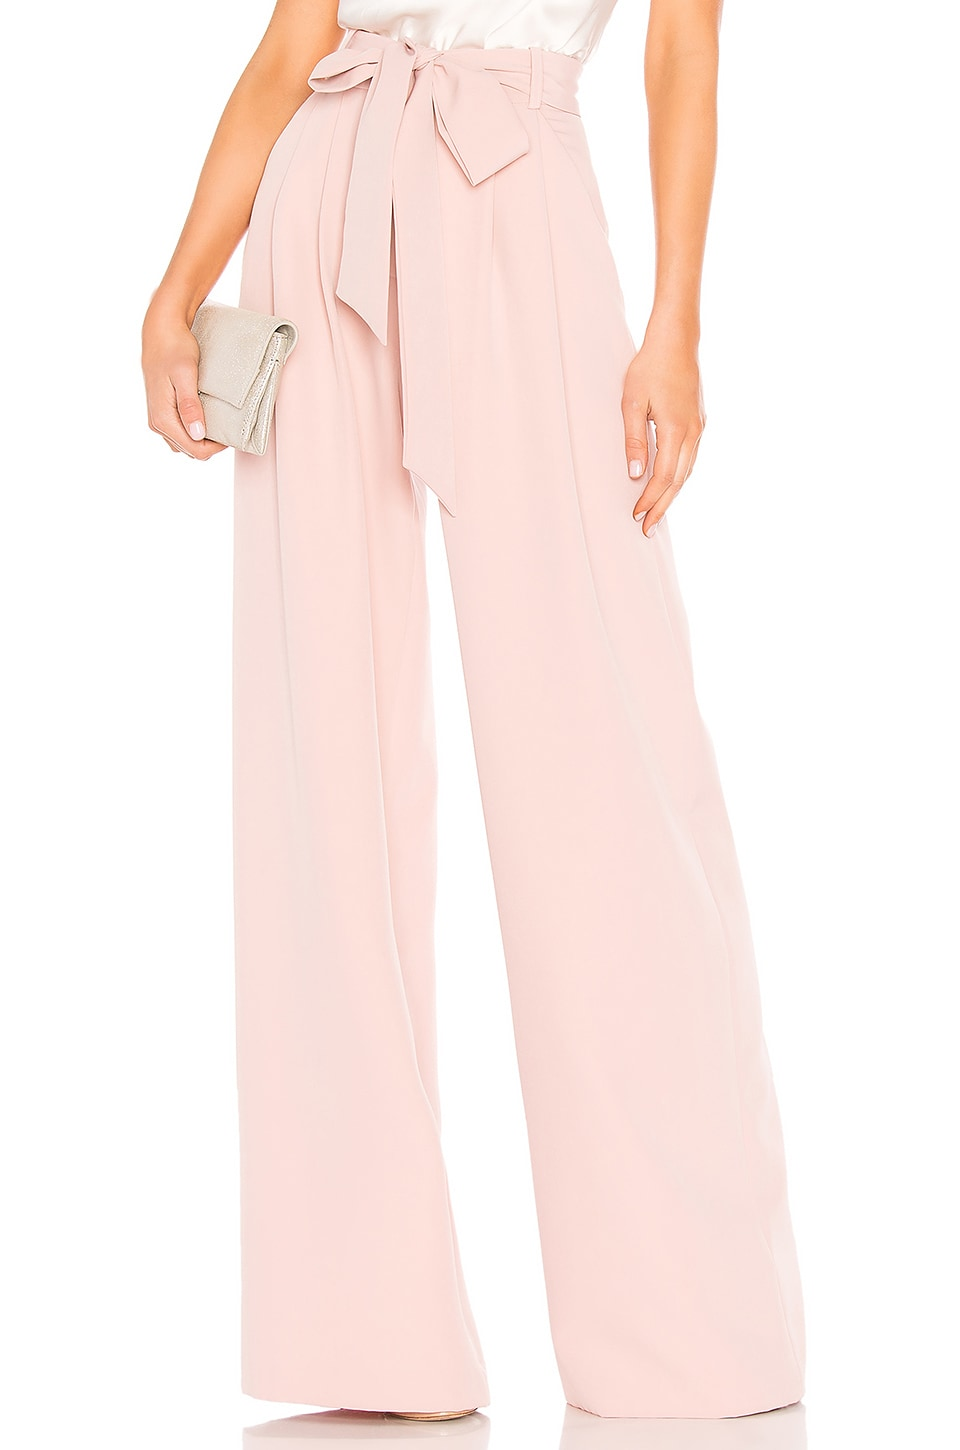 MILLY Natalie Pant in Blush